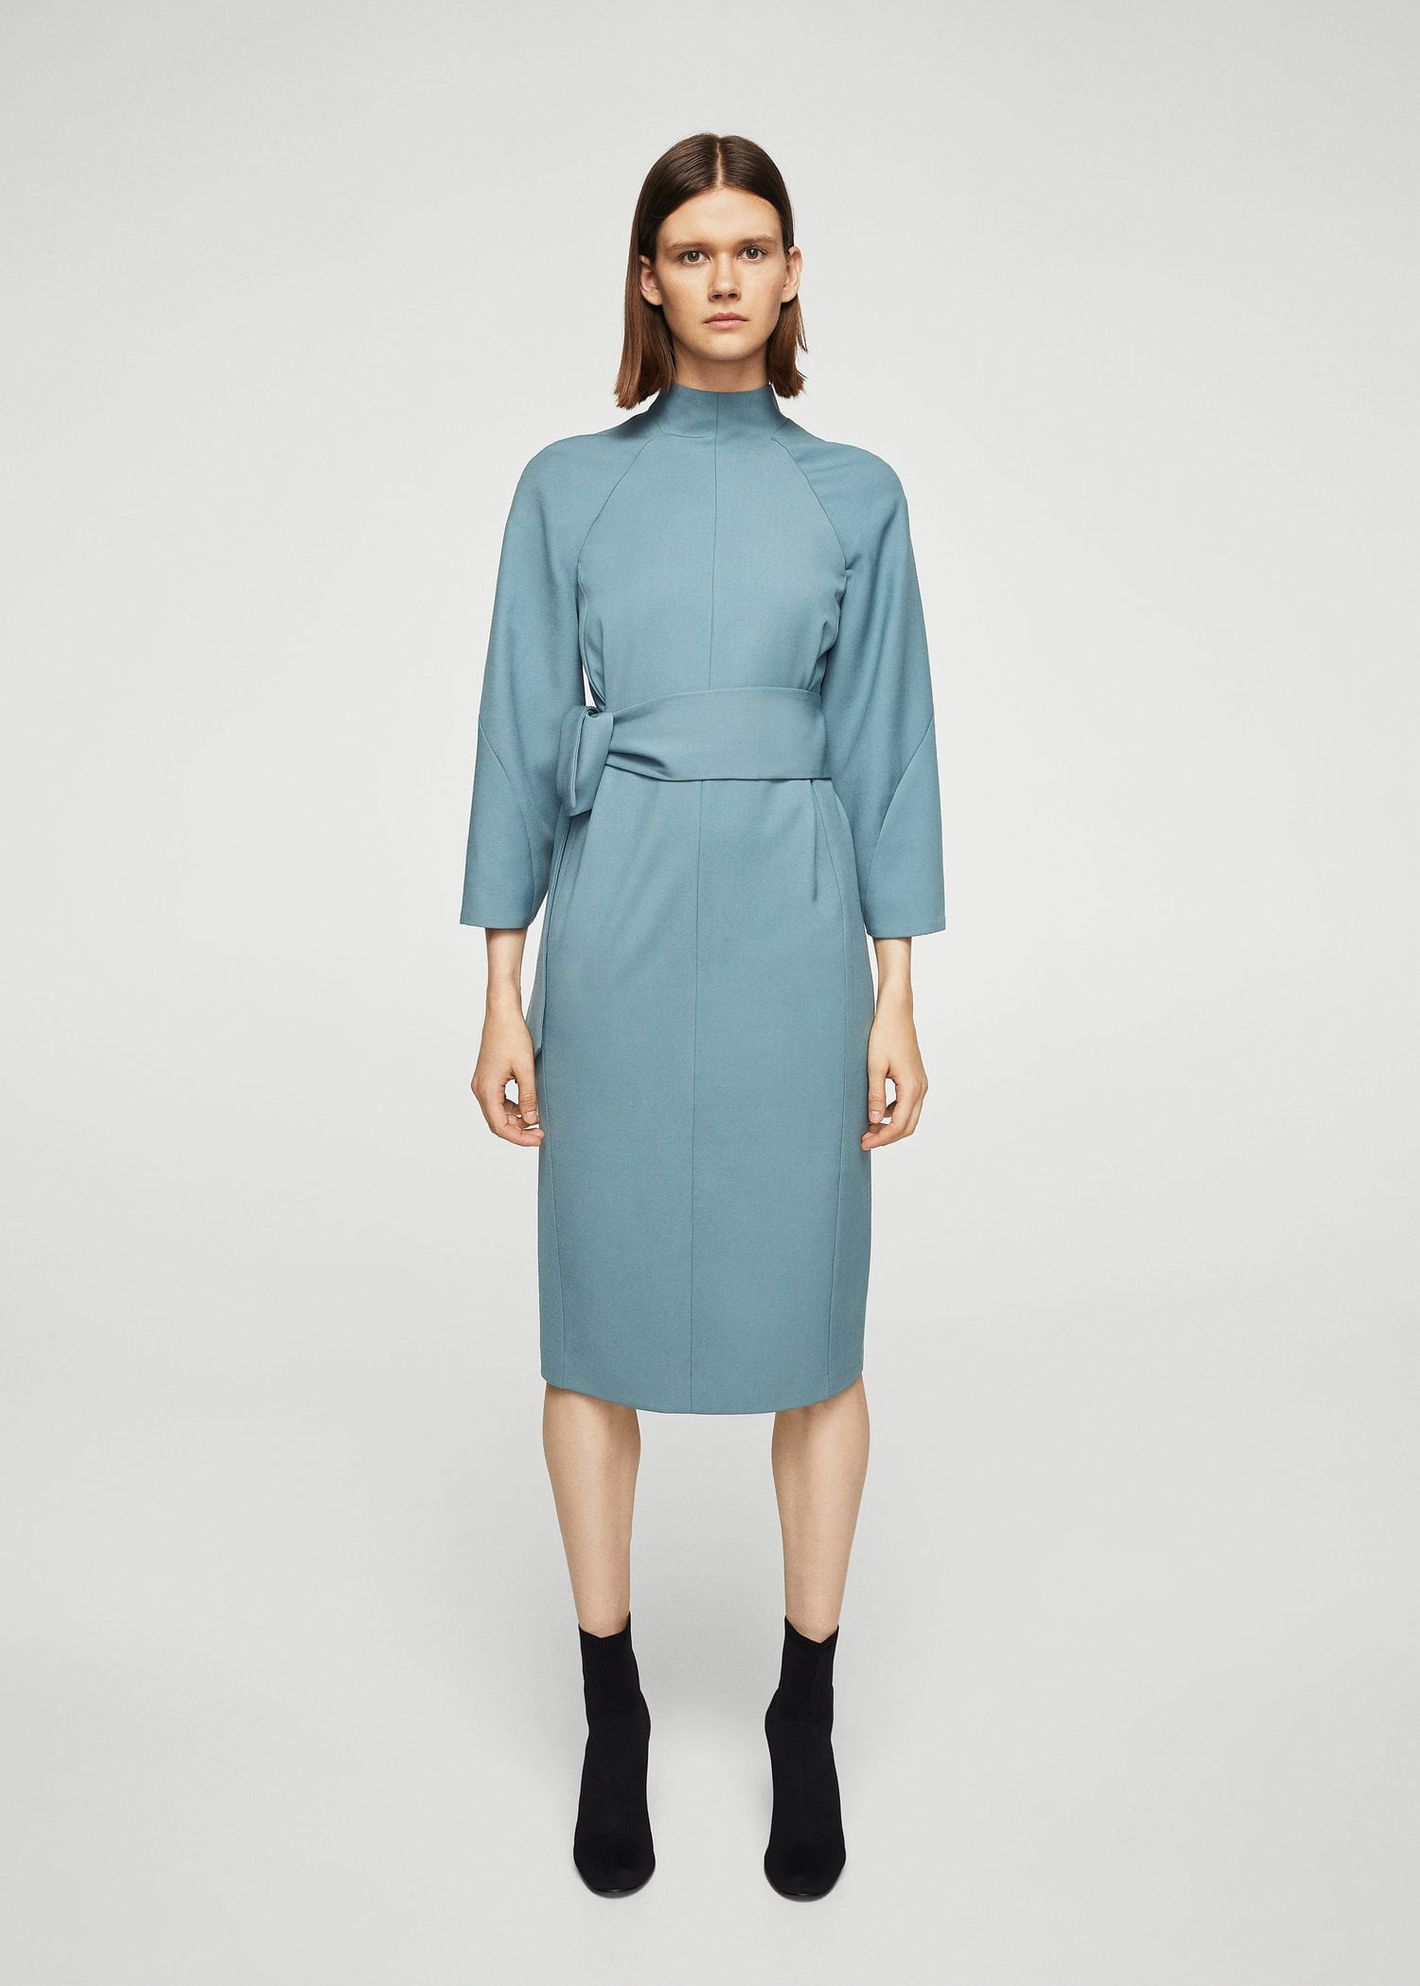 Mango Knot Wool-Blend Dress